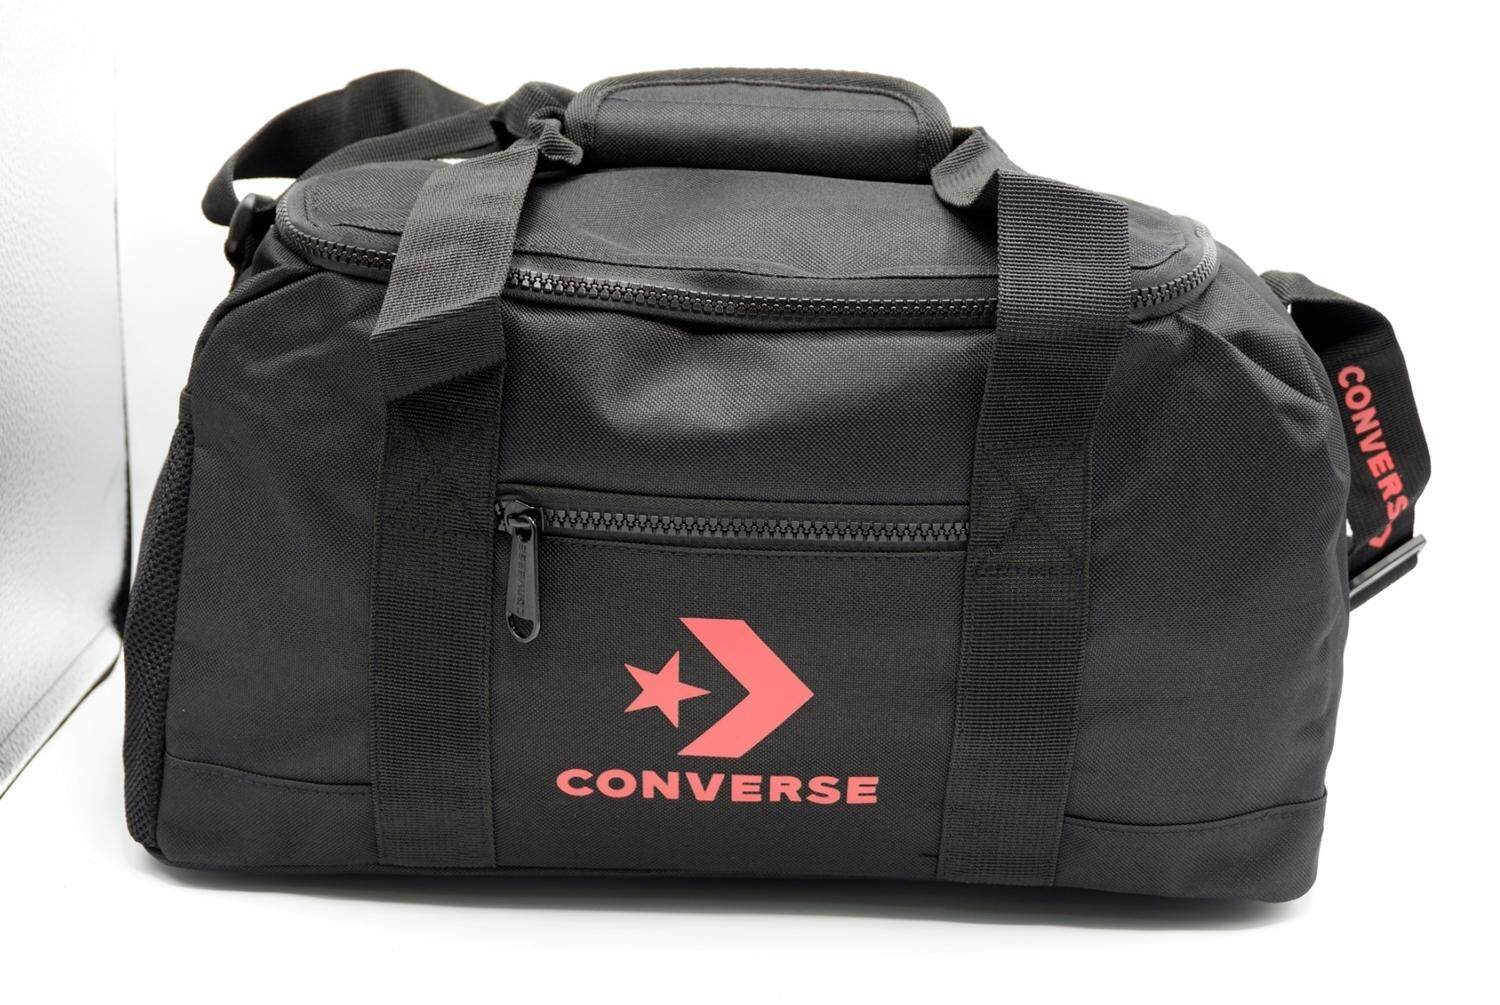 71f4673b65 CONVERSE กระเป๋าสะพาย รุ่น NEW SPEED DUFFLE BAG BLACK - 126001390BK-F  (BLACK)